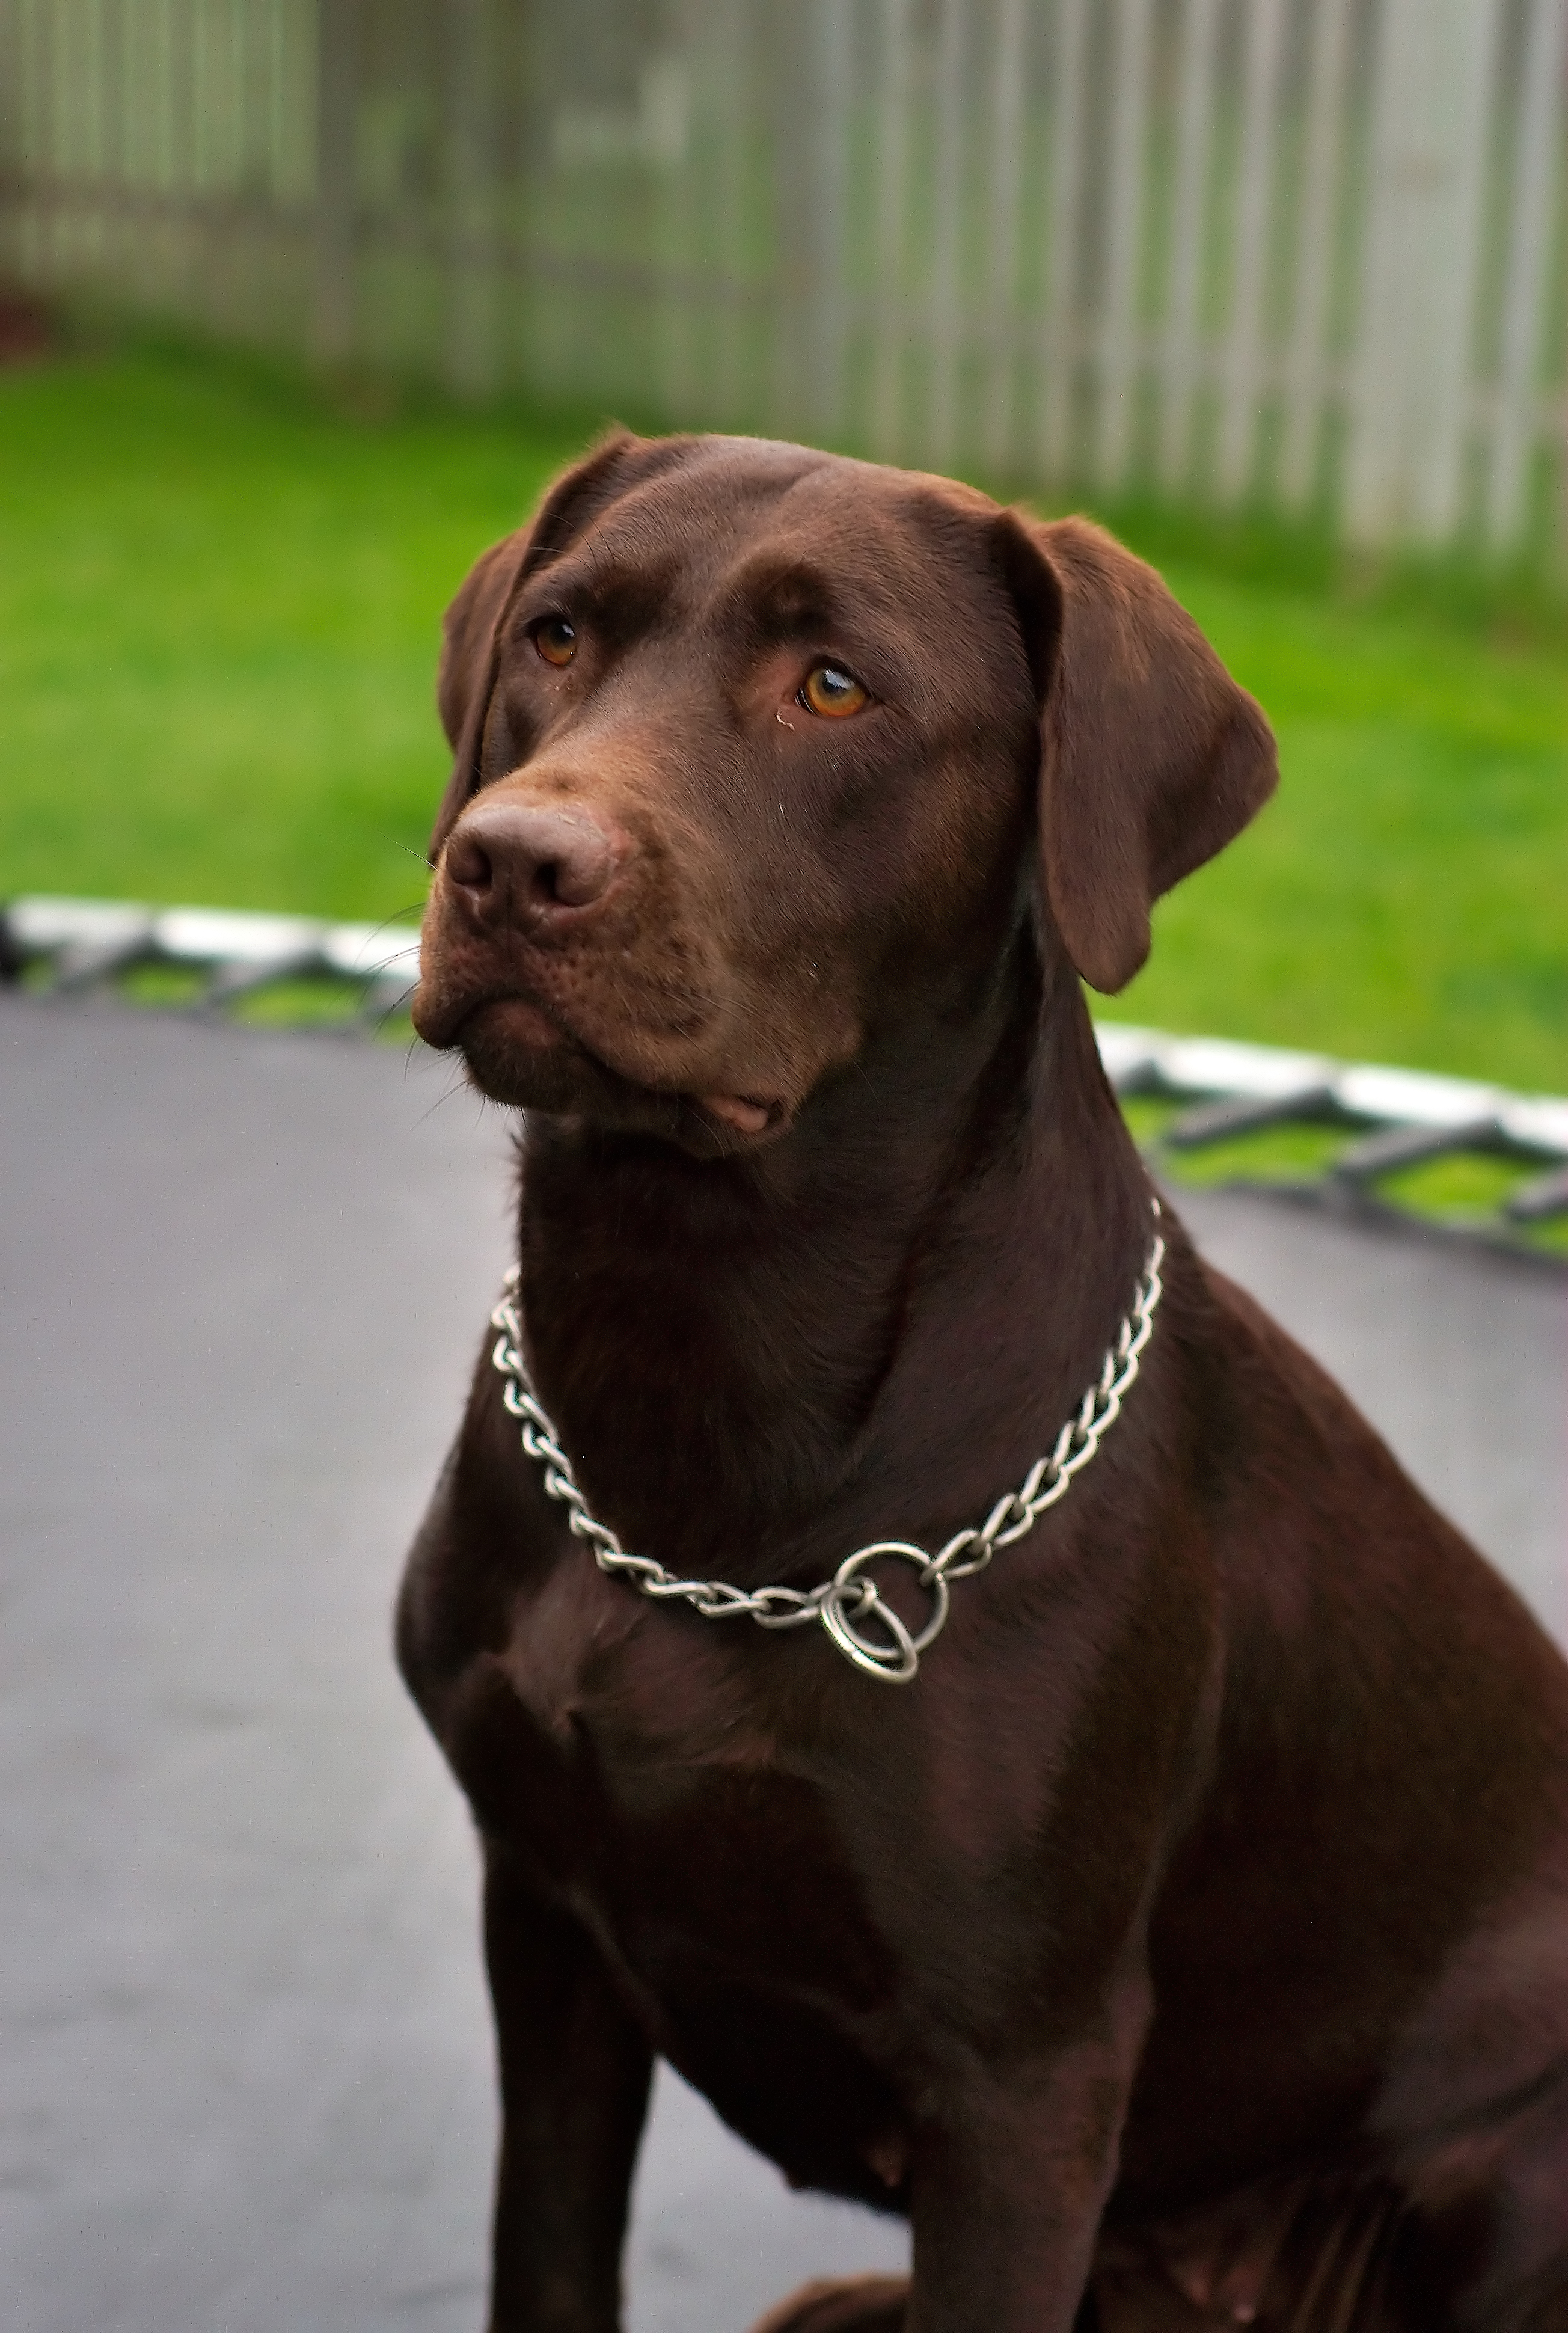 Labrador Retriever, Picture Of Array : File Labrador Retriever Chocolate Hershey Sit.jpg   Wikimedia Commons: File Labrador Retriever chocolate Hershey sit.jpg   Wikimedia Commons